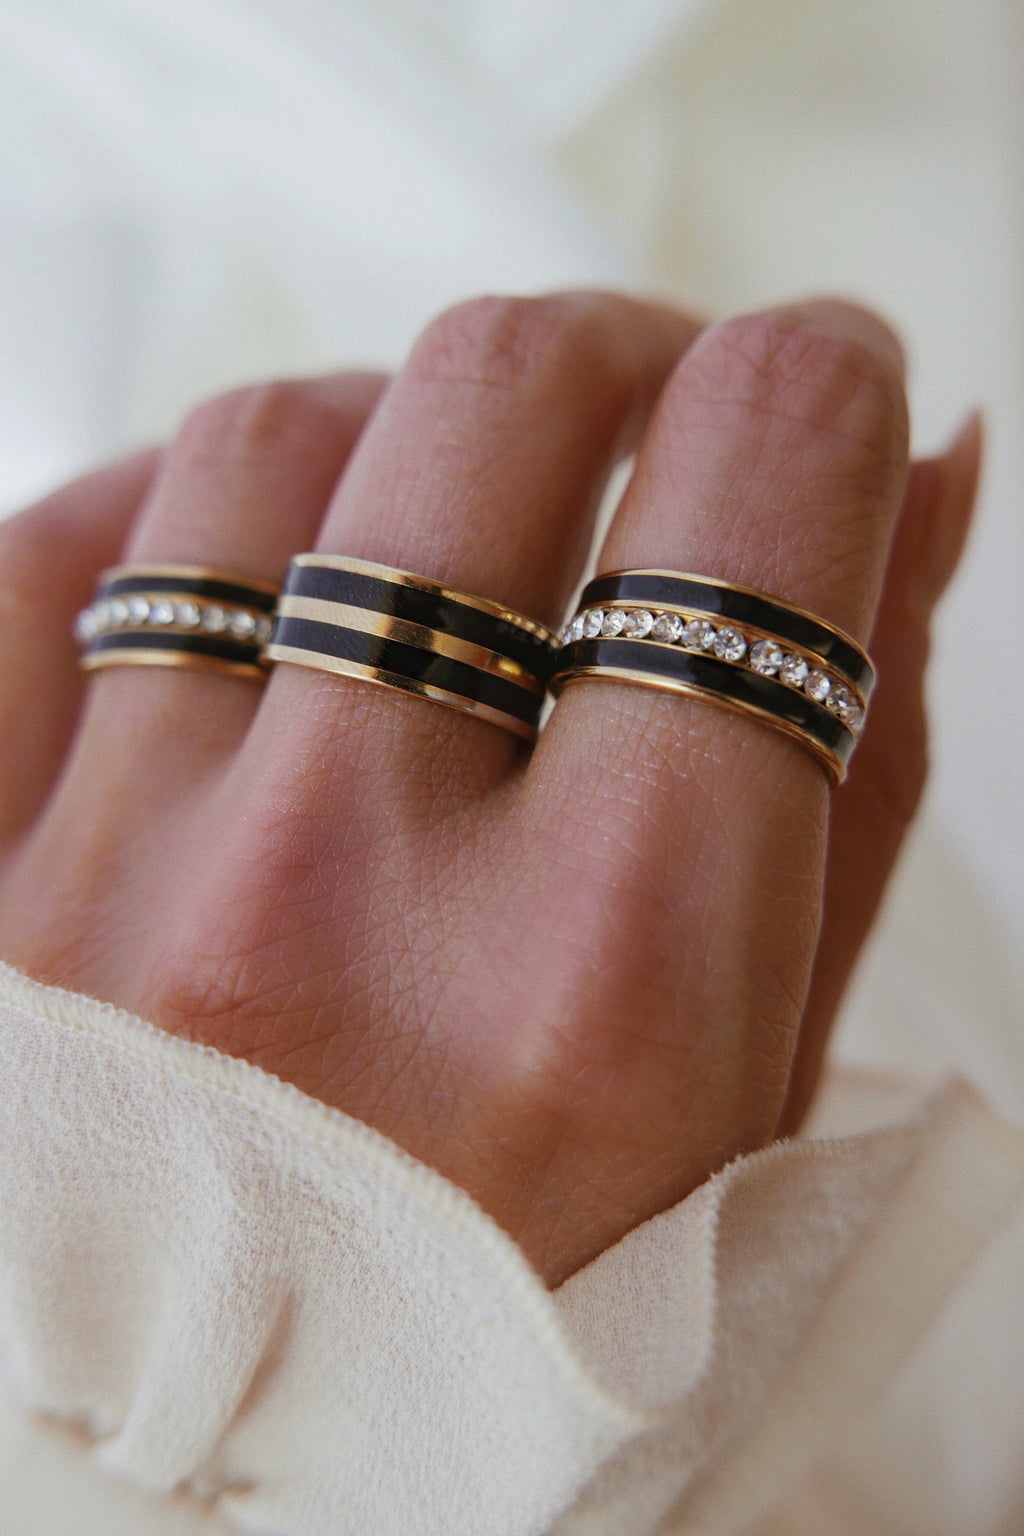 Salento Ring - Black - Boutique Minimaliste